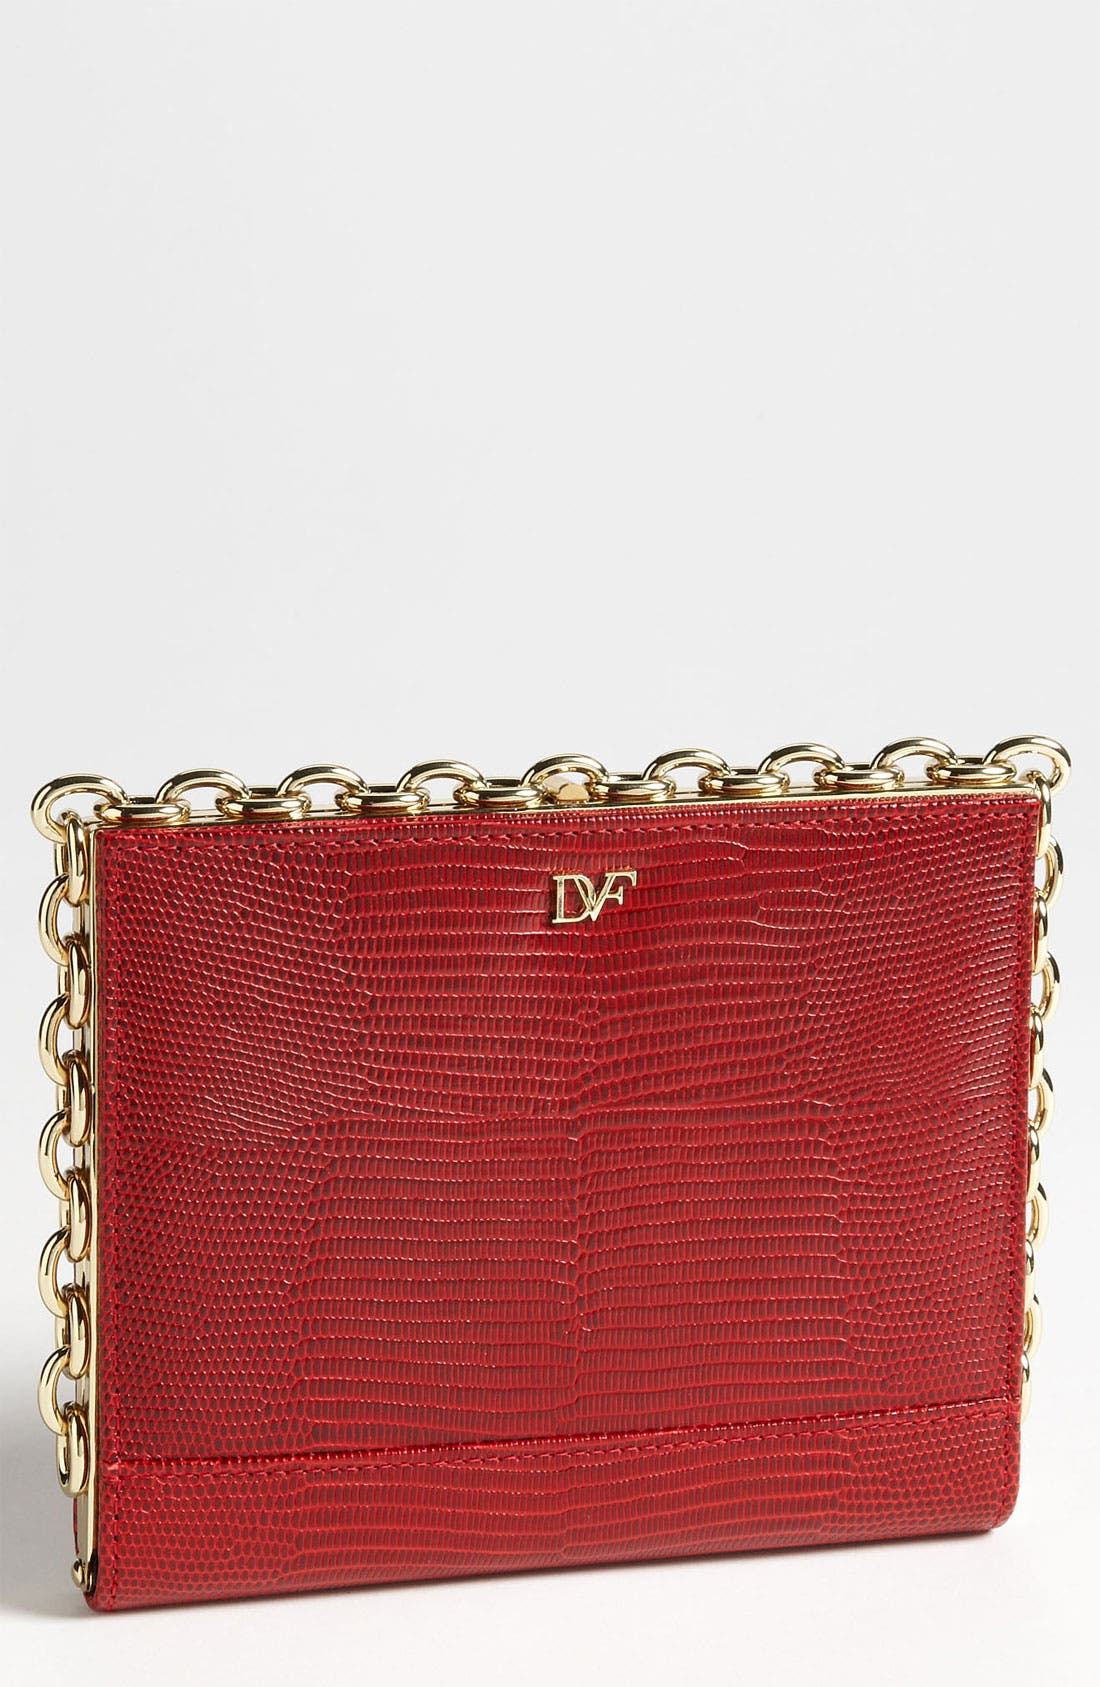 Alternate Image 1 Selected - Diane von Furstenberg 'Catena' Lizard Embossed Clutch